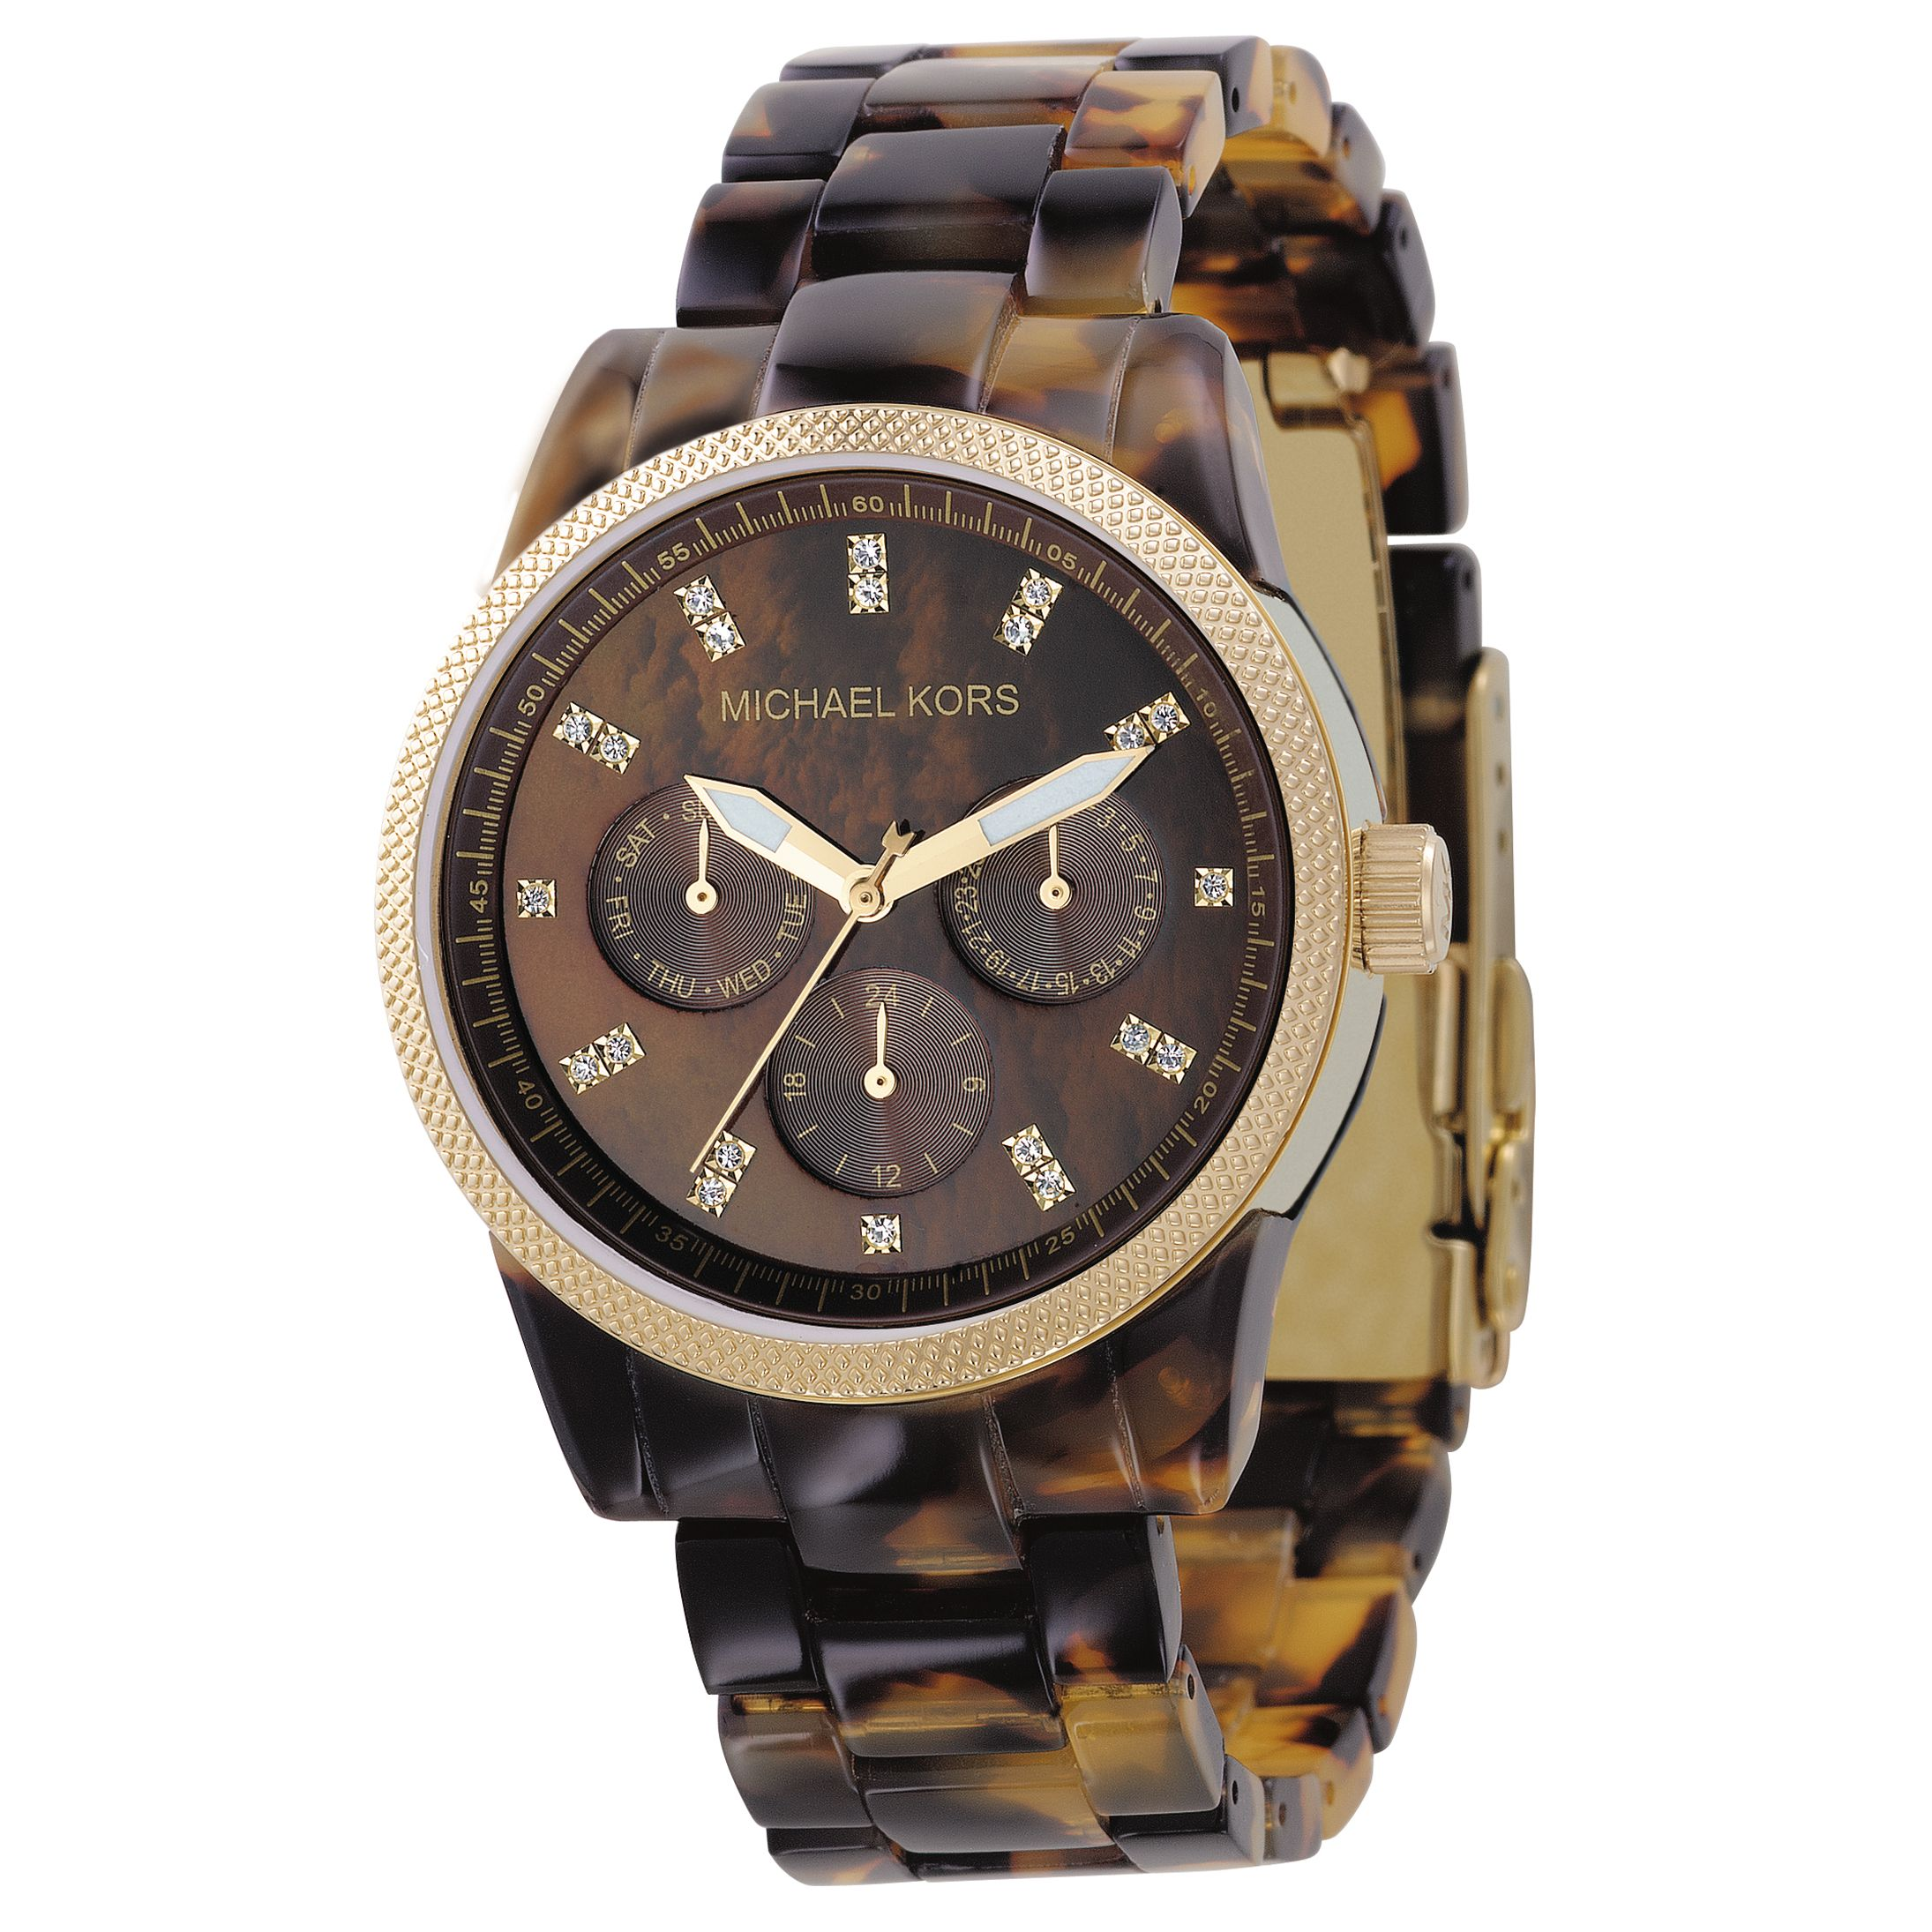 Michael Kors MK5038 Women's Chronograph Watch, Tortoiseshell